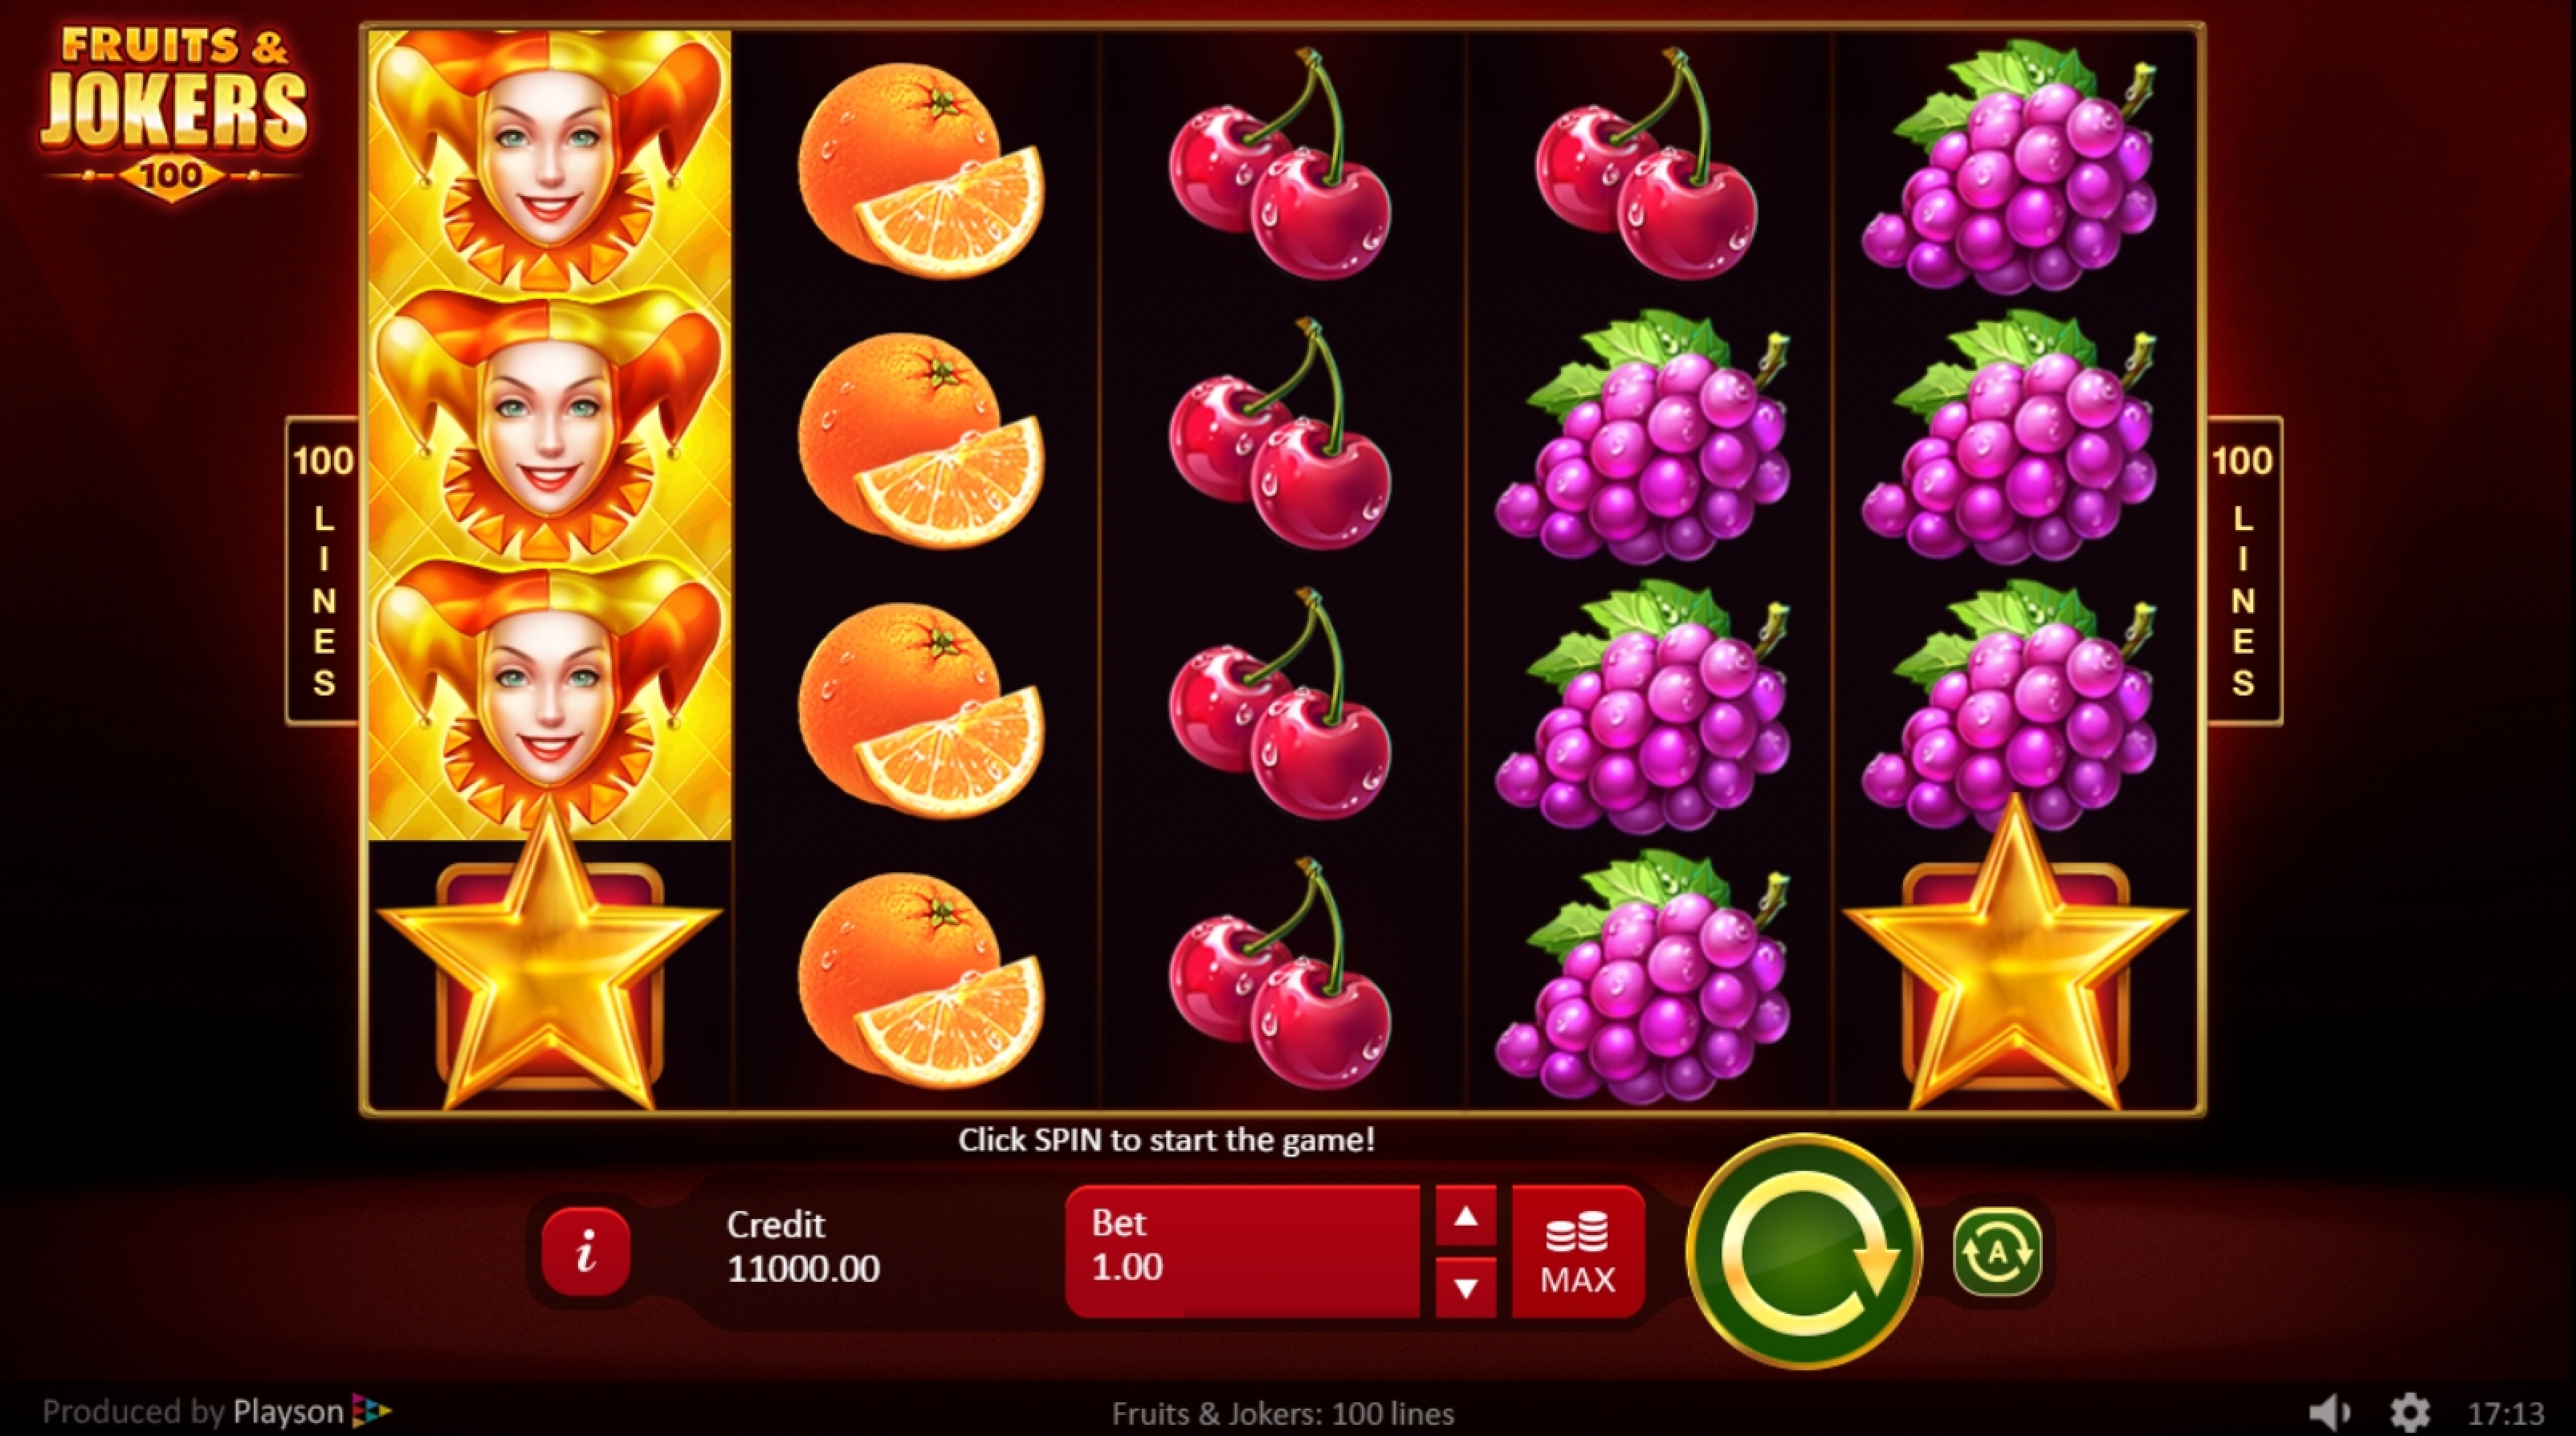 Reels in Fruits & Jokers: 100 lines Slot Game by Playson